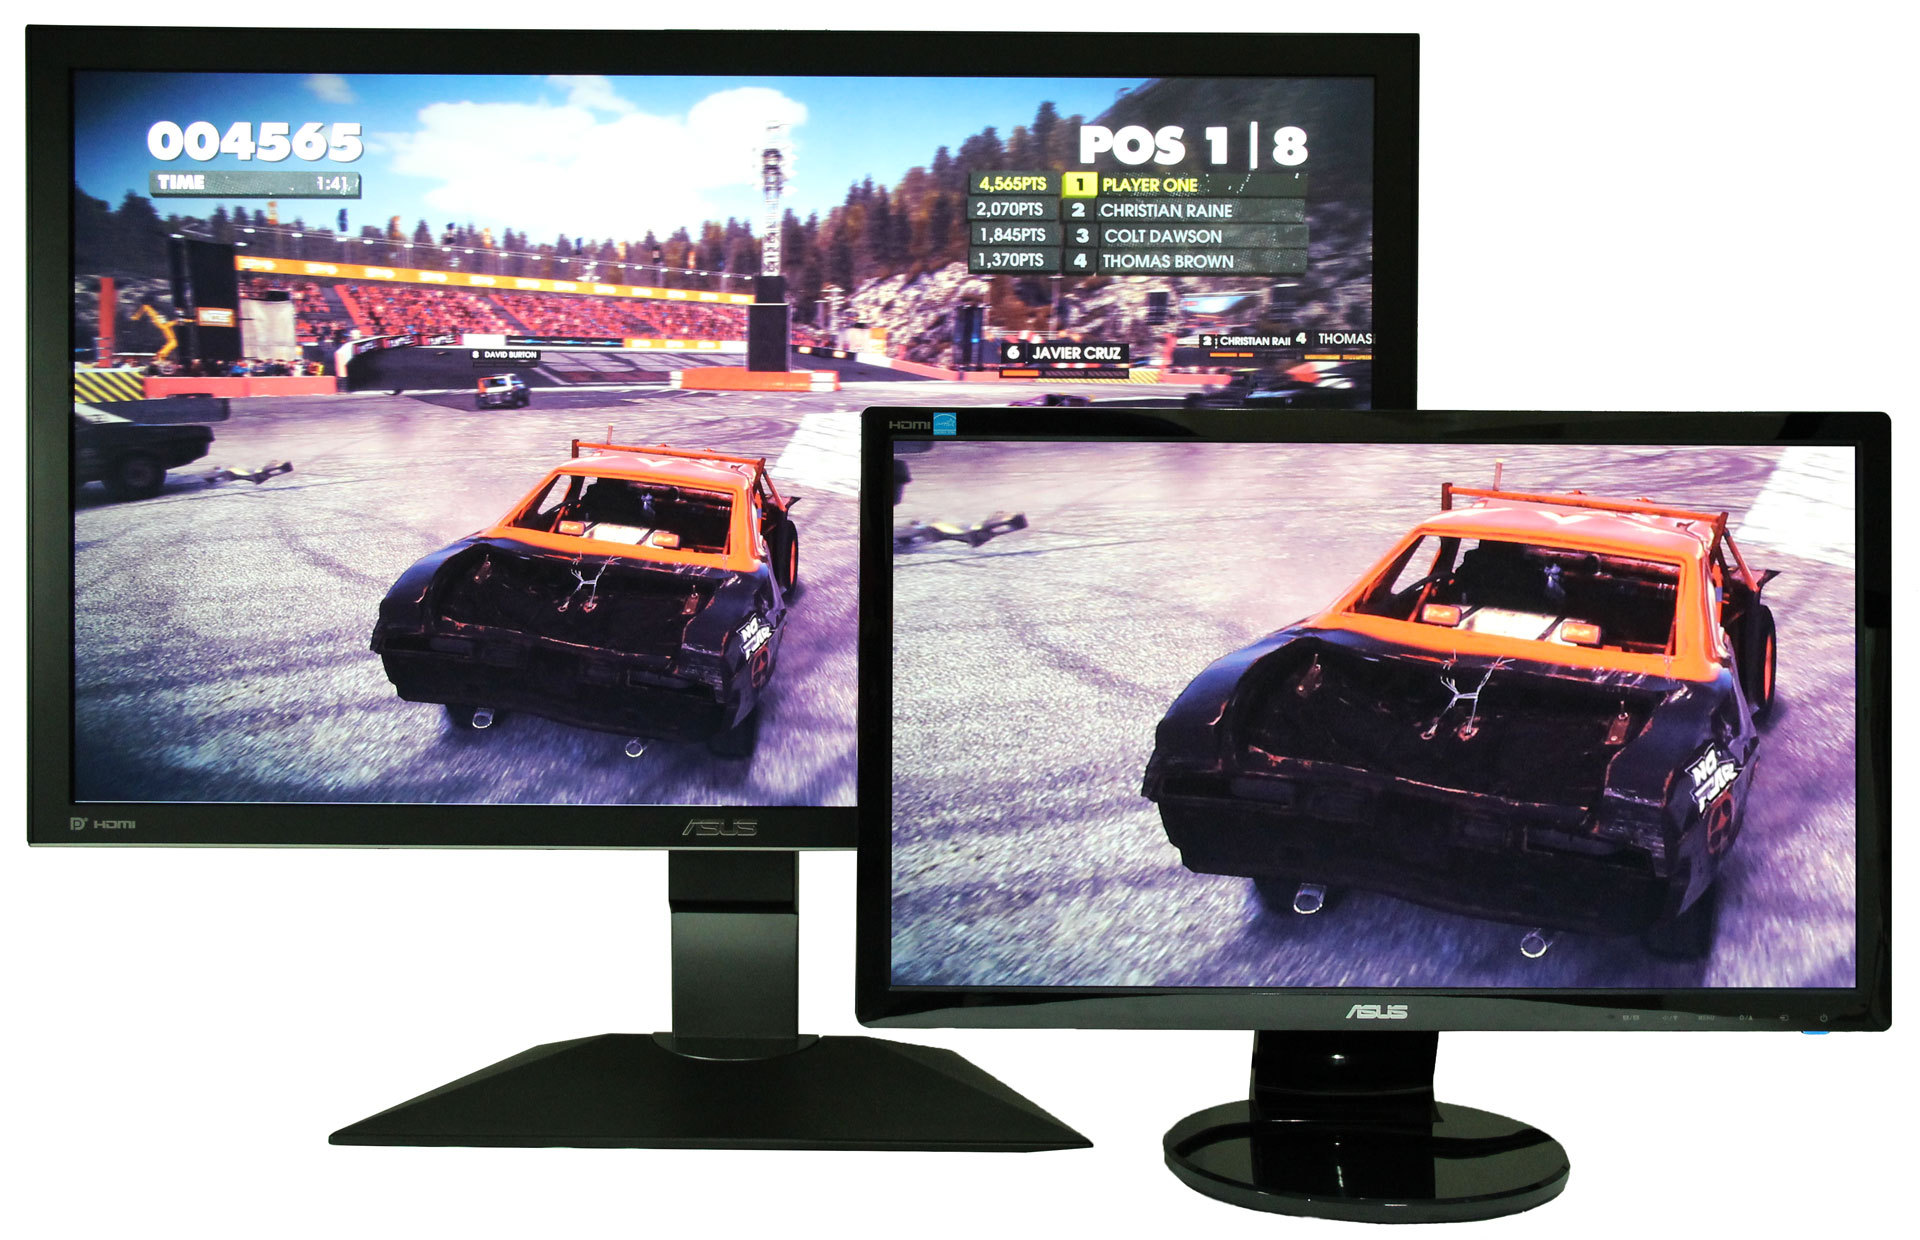 4K Monitor Requirements and Usage